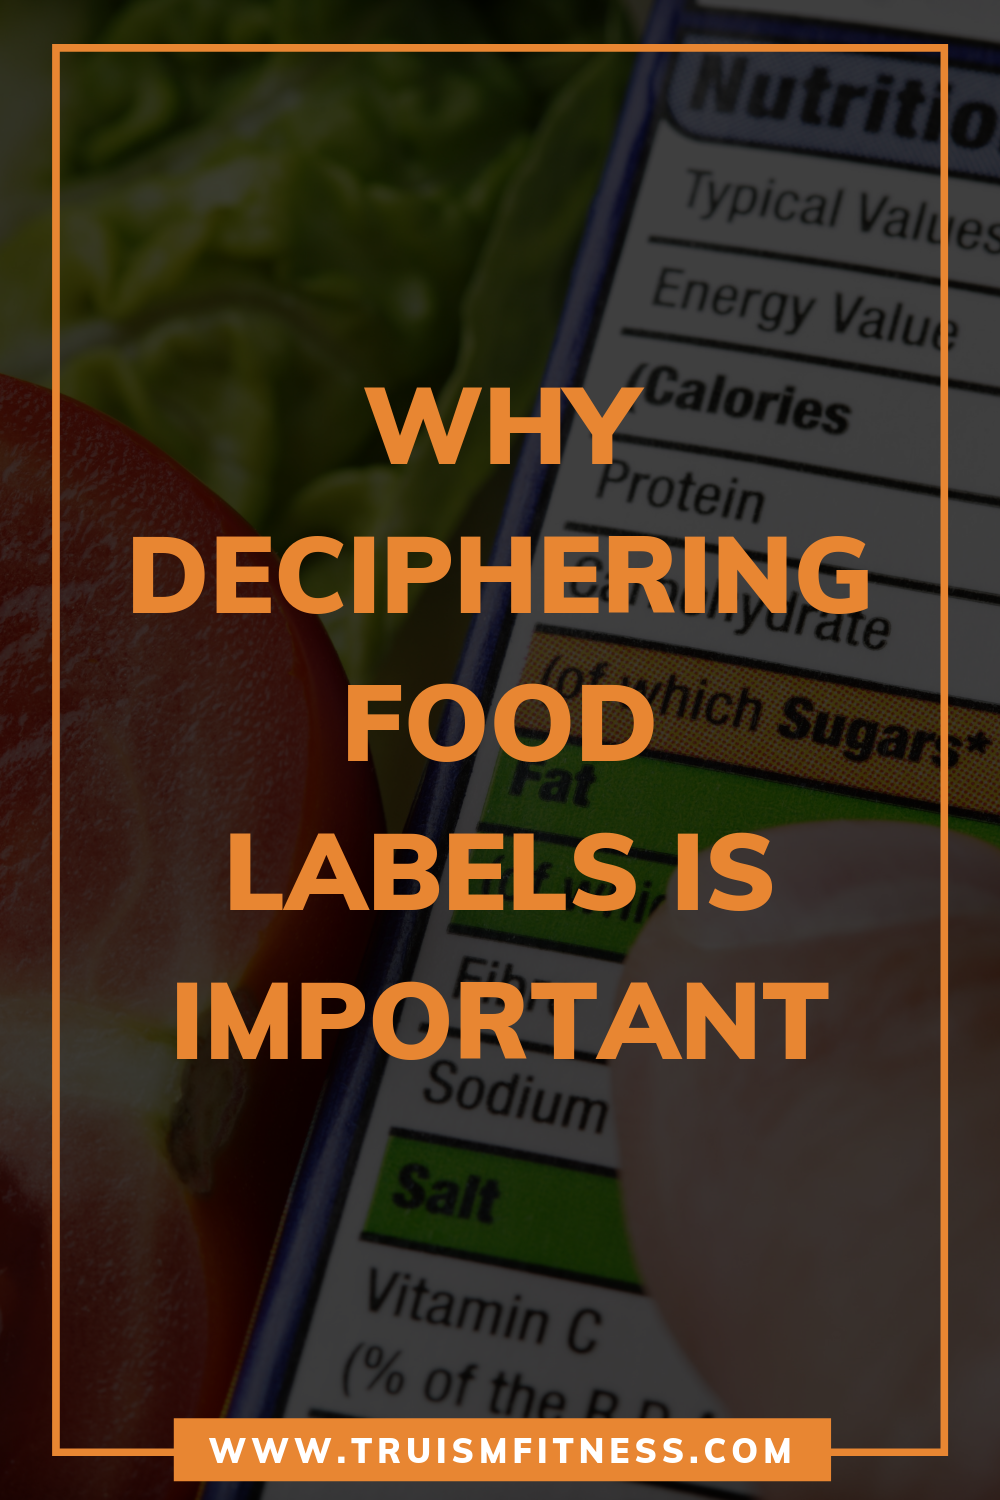 I decided to change my eating habits then I realized that deciphering food labels becomes a must use...